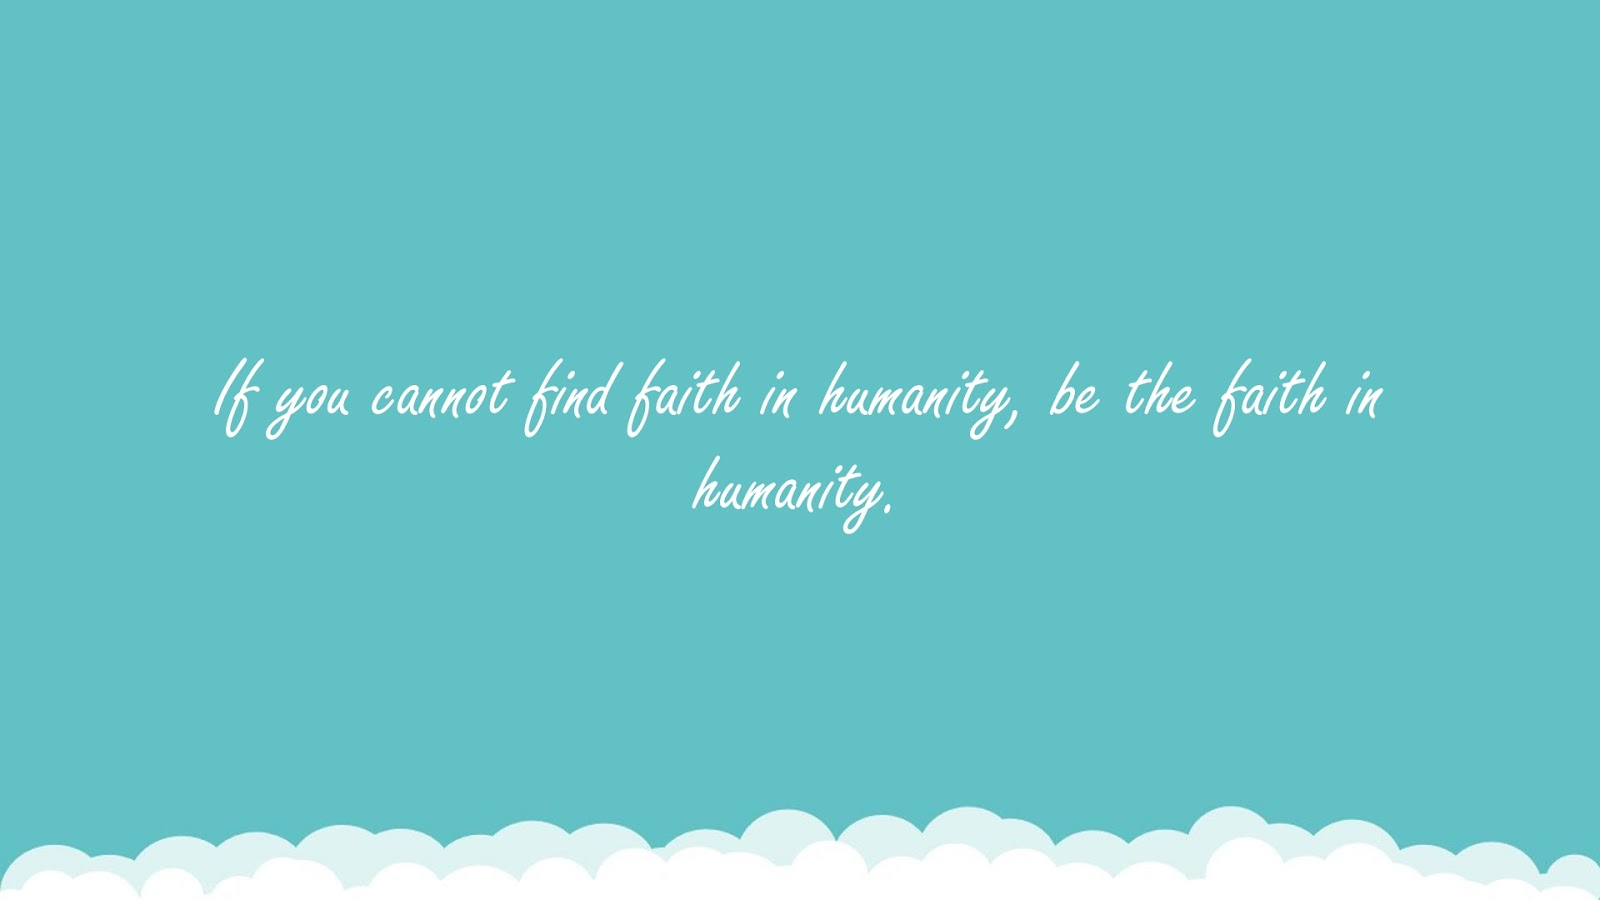 If you cannot find faith in humanity, be the faith in humanity.FALSE